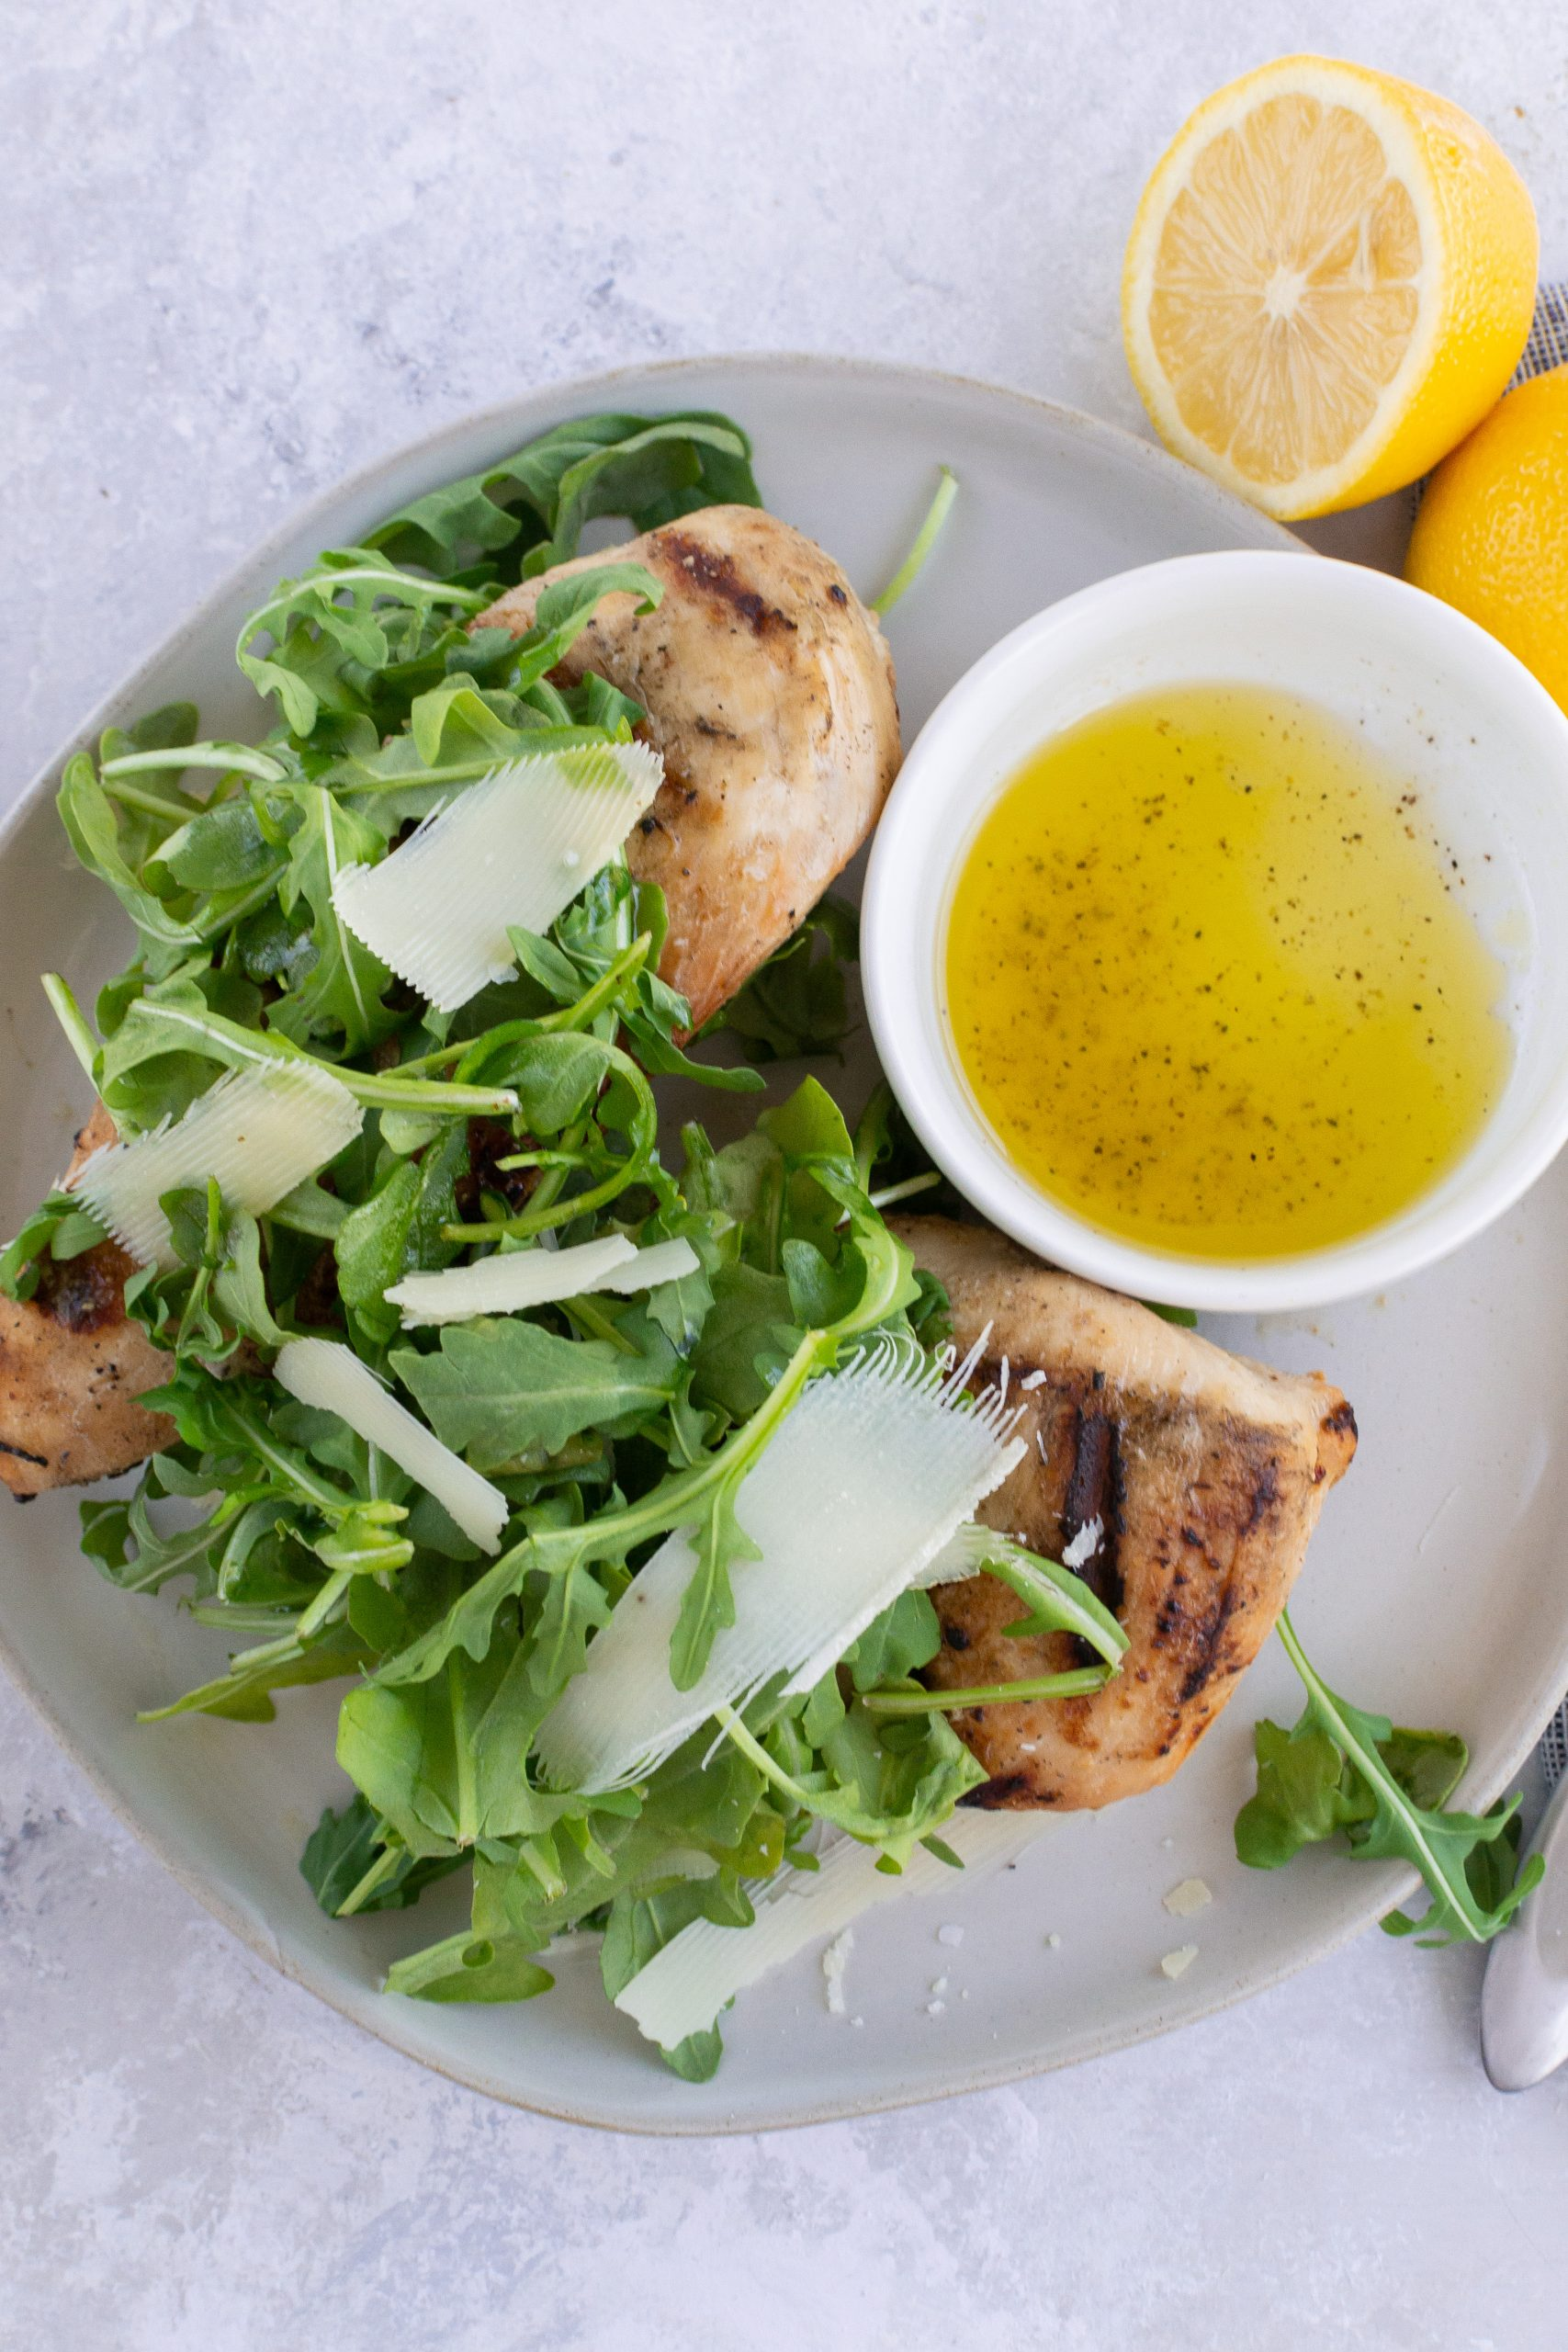 Grilled Chicken with Lemony Arugula Salad Topping